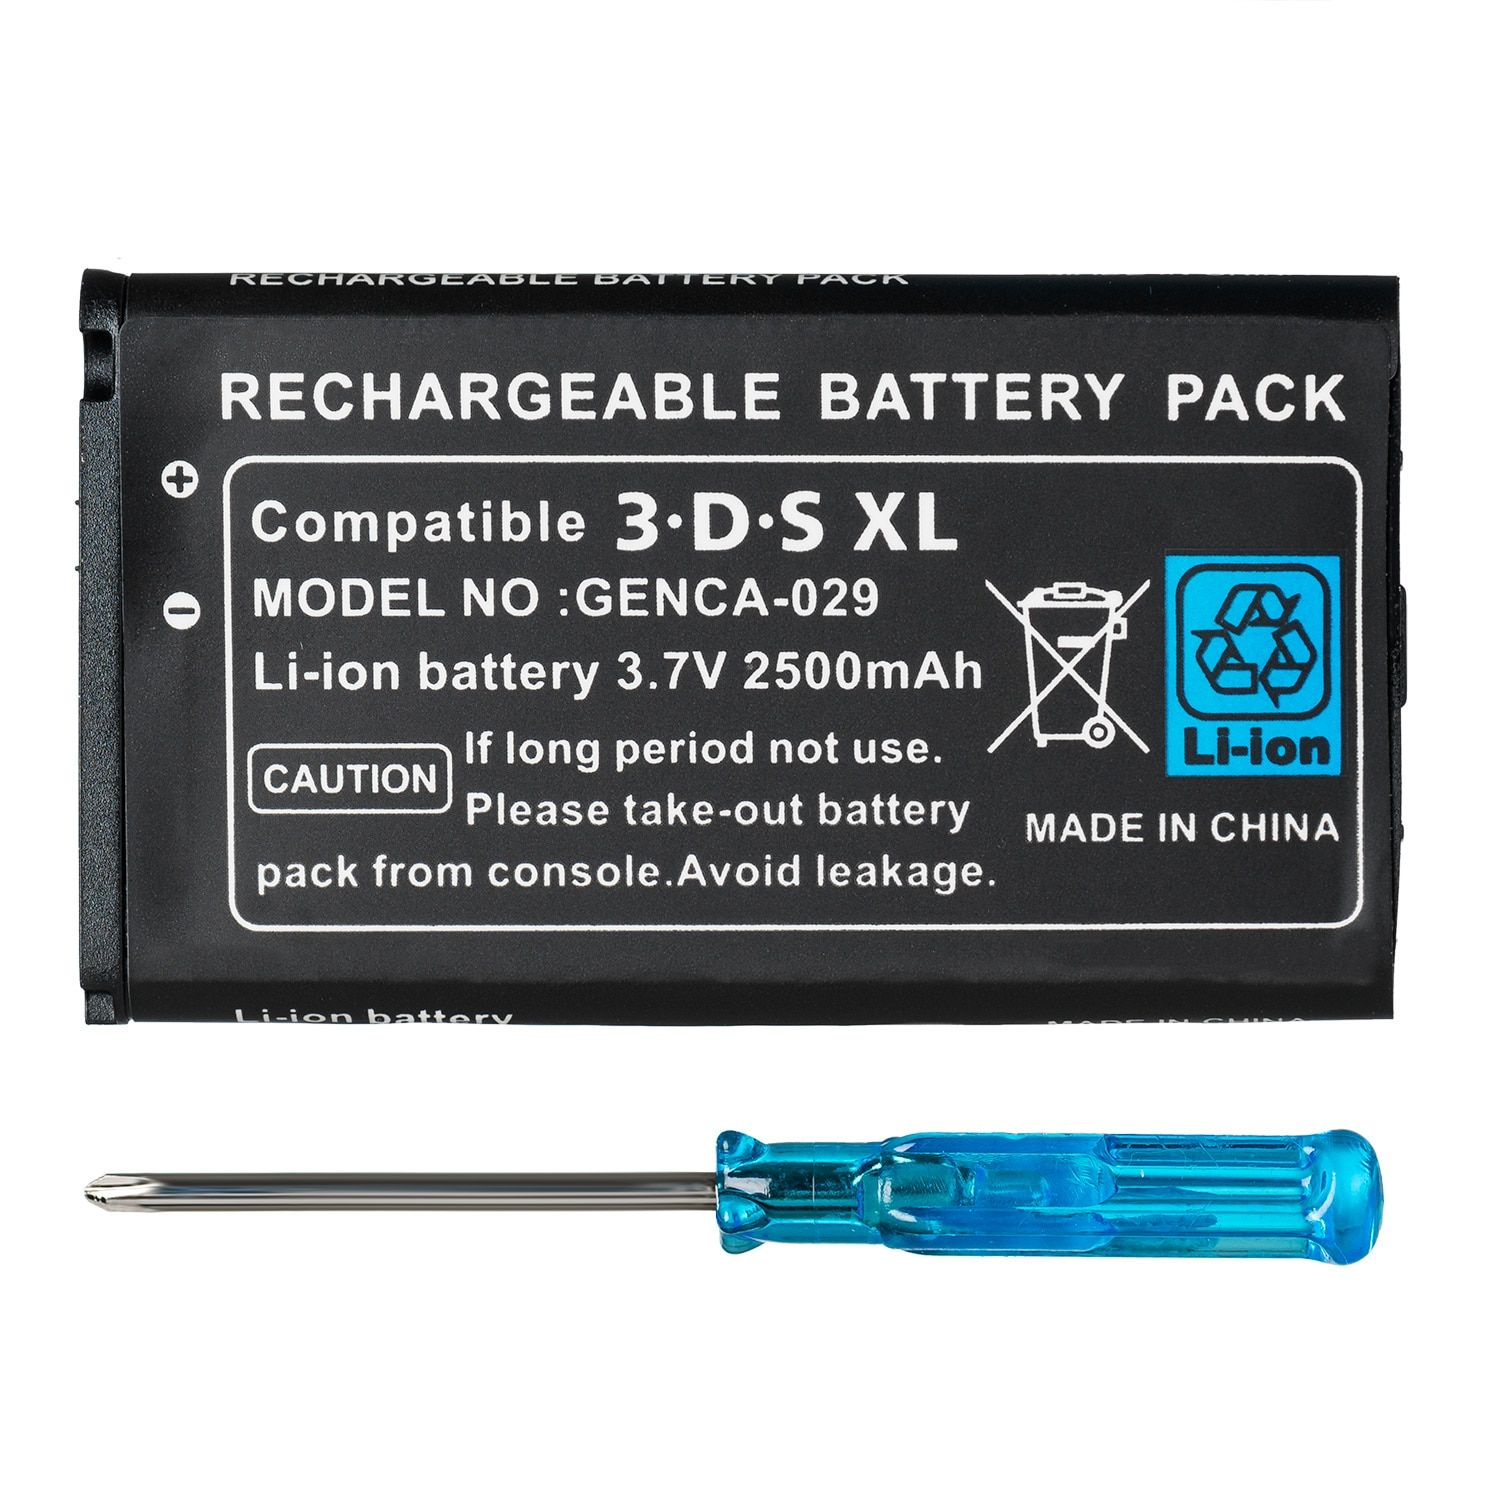 2500mAh 3.7V Rechargeable Lithium-ion Battery + Tool Kit Pack for Nintendo 3DS LL/XL